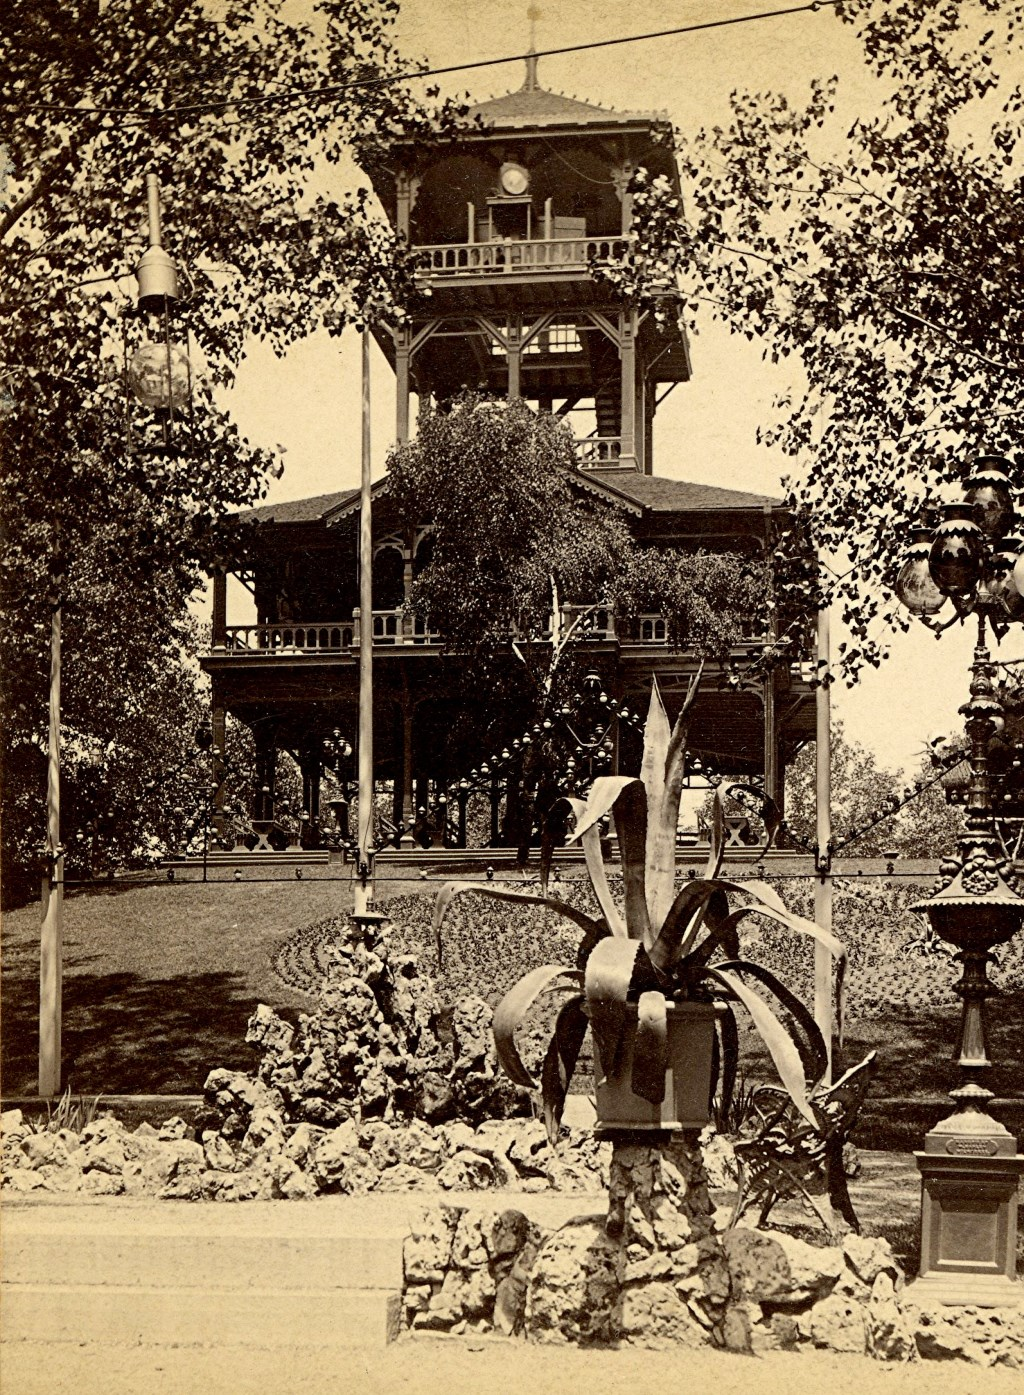 Schlitz Garden's Observation Tower, 1880s. Image courtesy of Jeff Beutner.